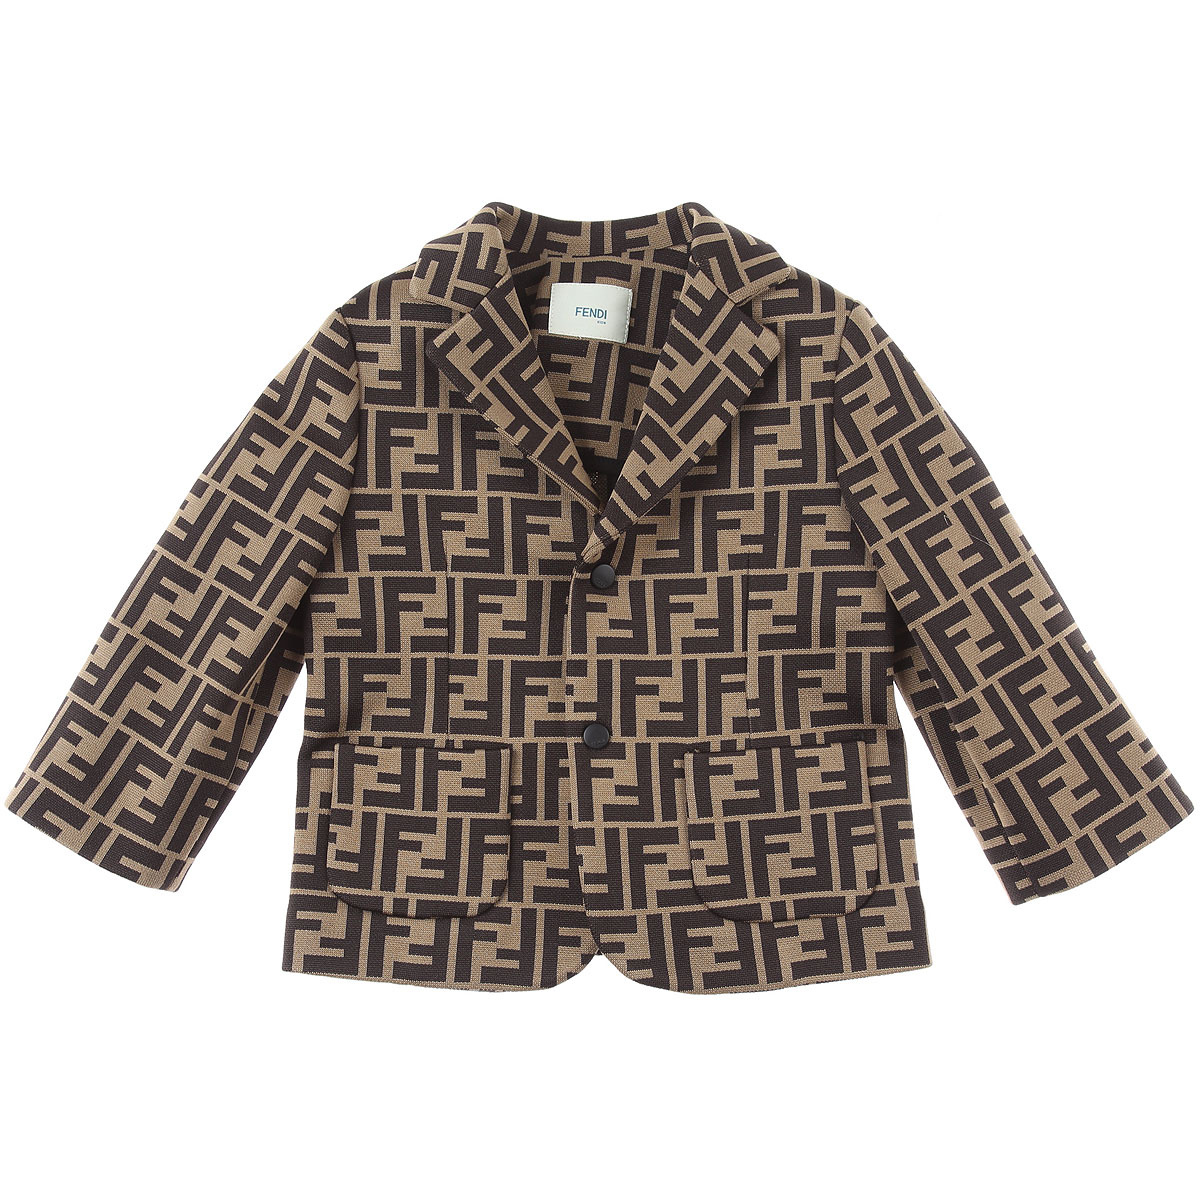 Fendi Baby Blazer for Boys On Sale, Brown, Cotton, 2019, 12 M 2Y